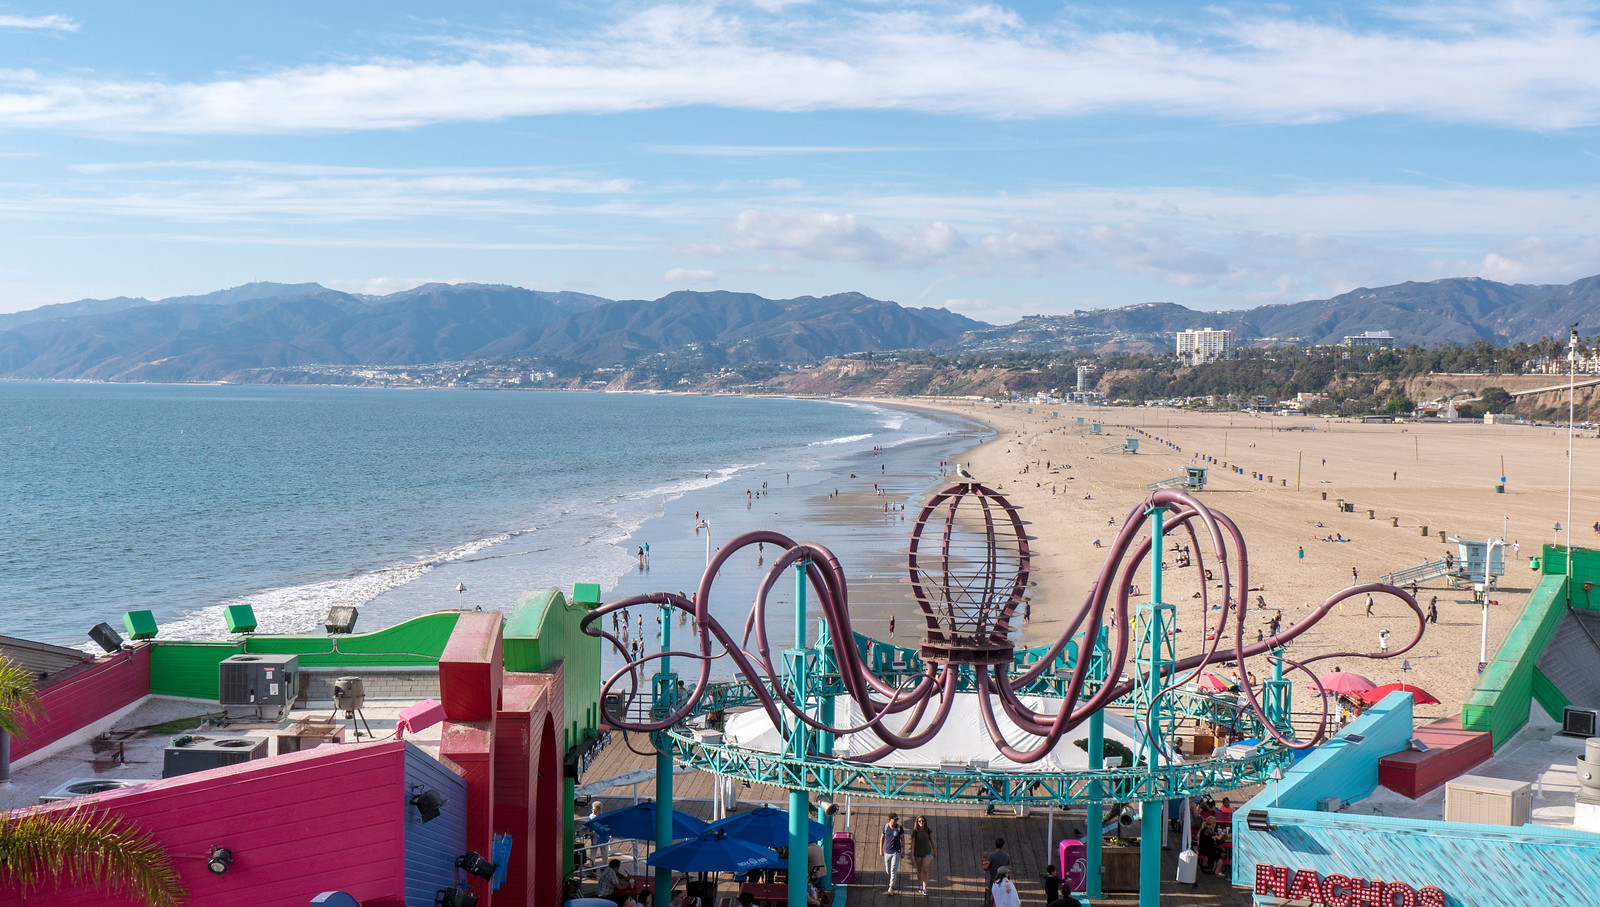 Santa Monica Pier - view from the top of the Ferris Wheel - 2 Days in Los Angeles Itinerary for First Timers